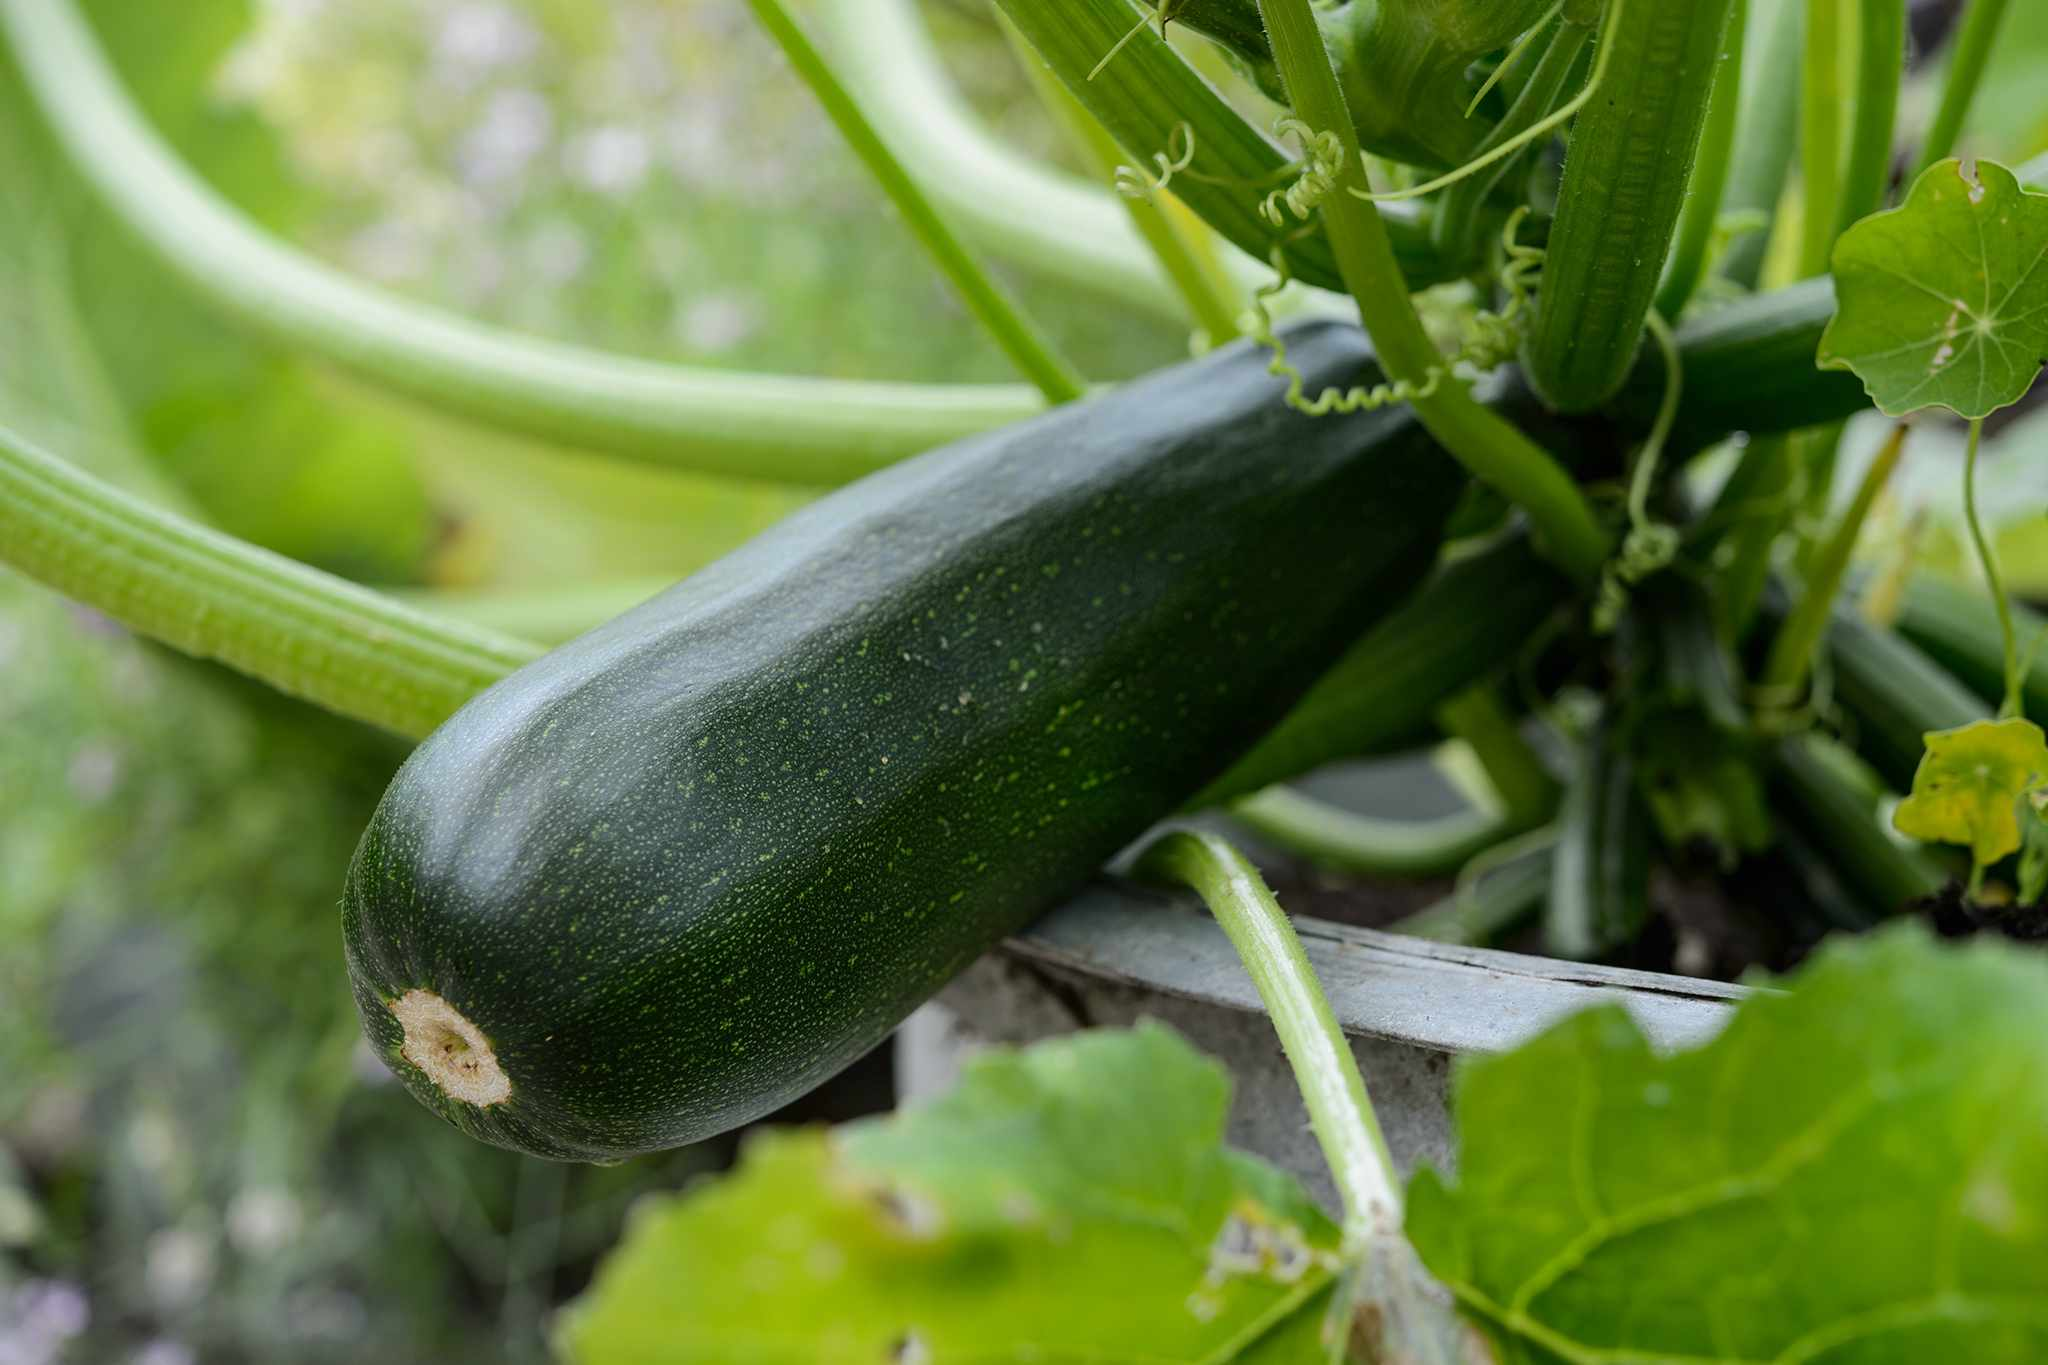 Courgette at the base of plant